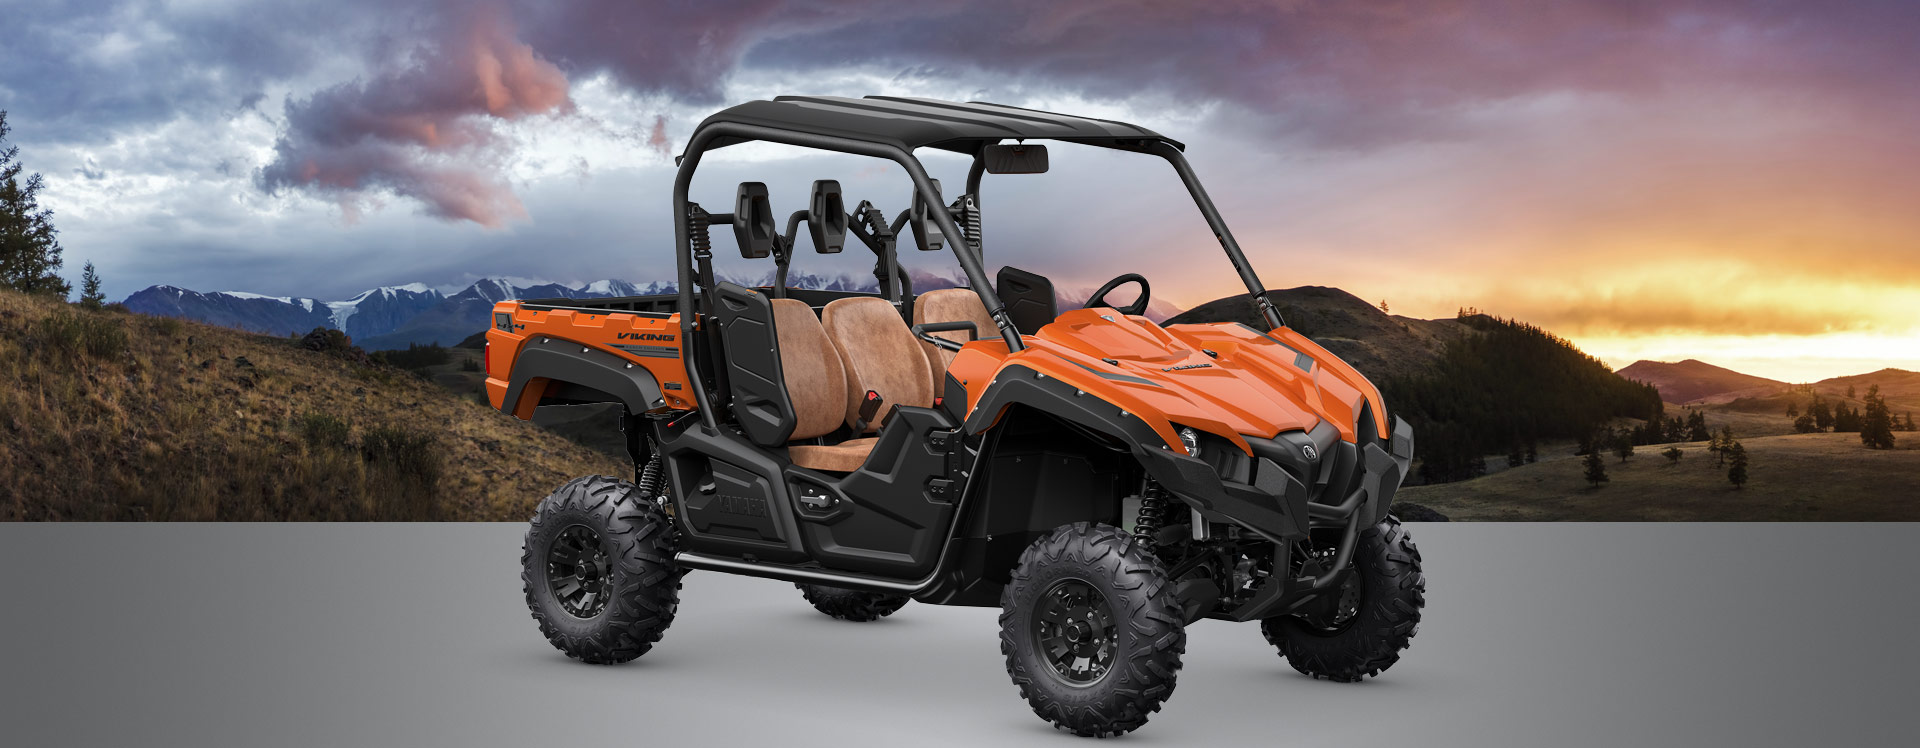 2021 Yamaha Viking Eps Ranch Edition Utility Side By Side Model Home